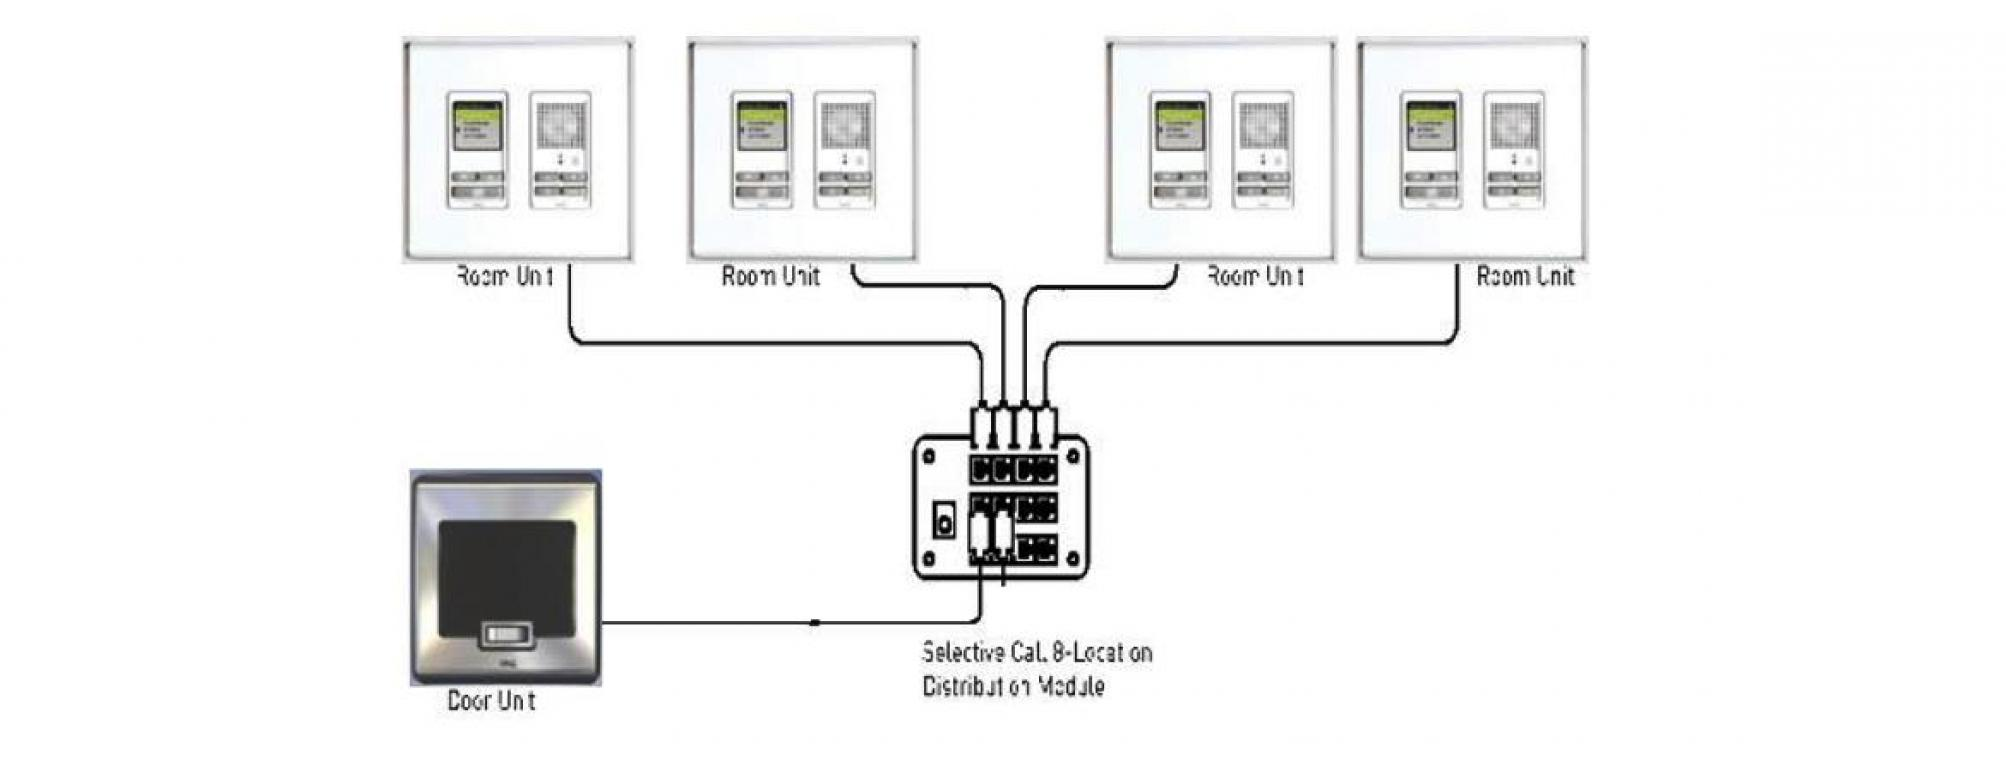 Intercom System Installation